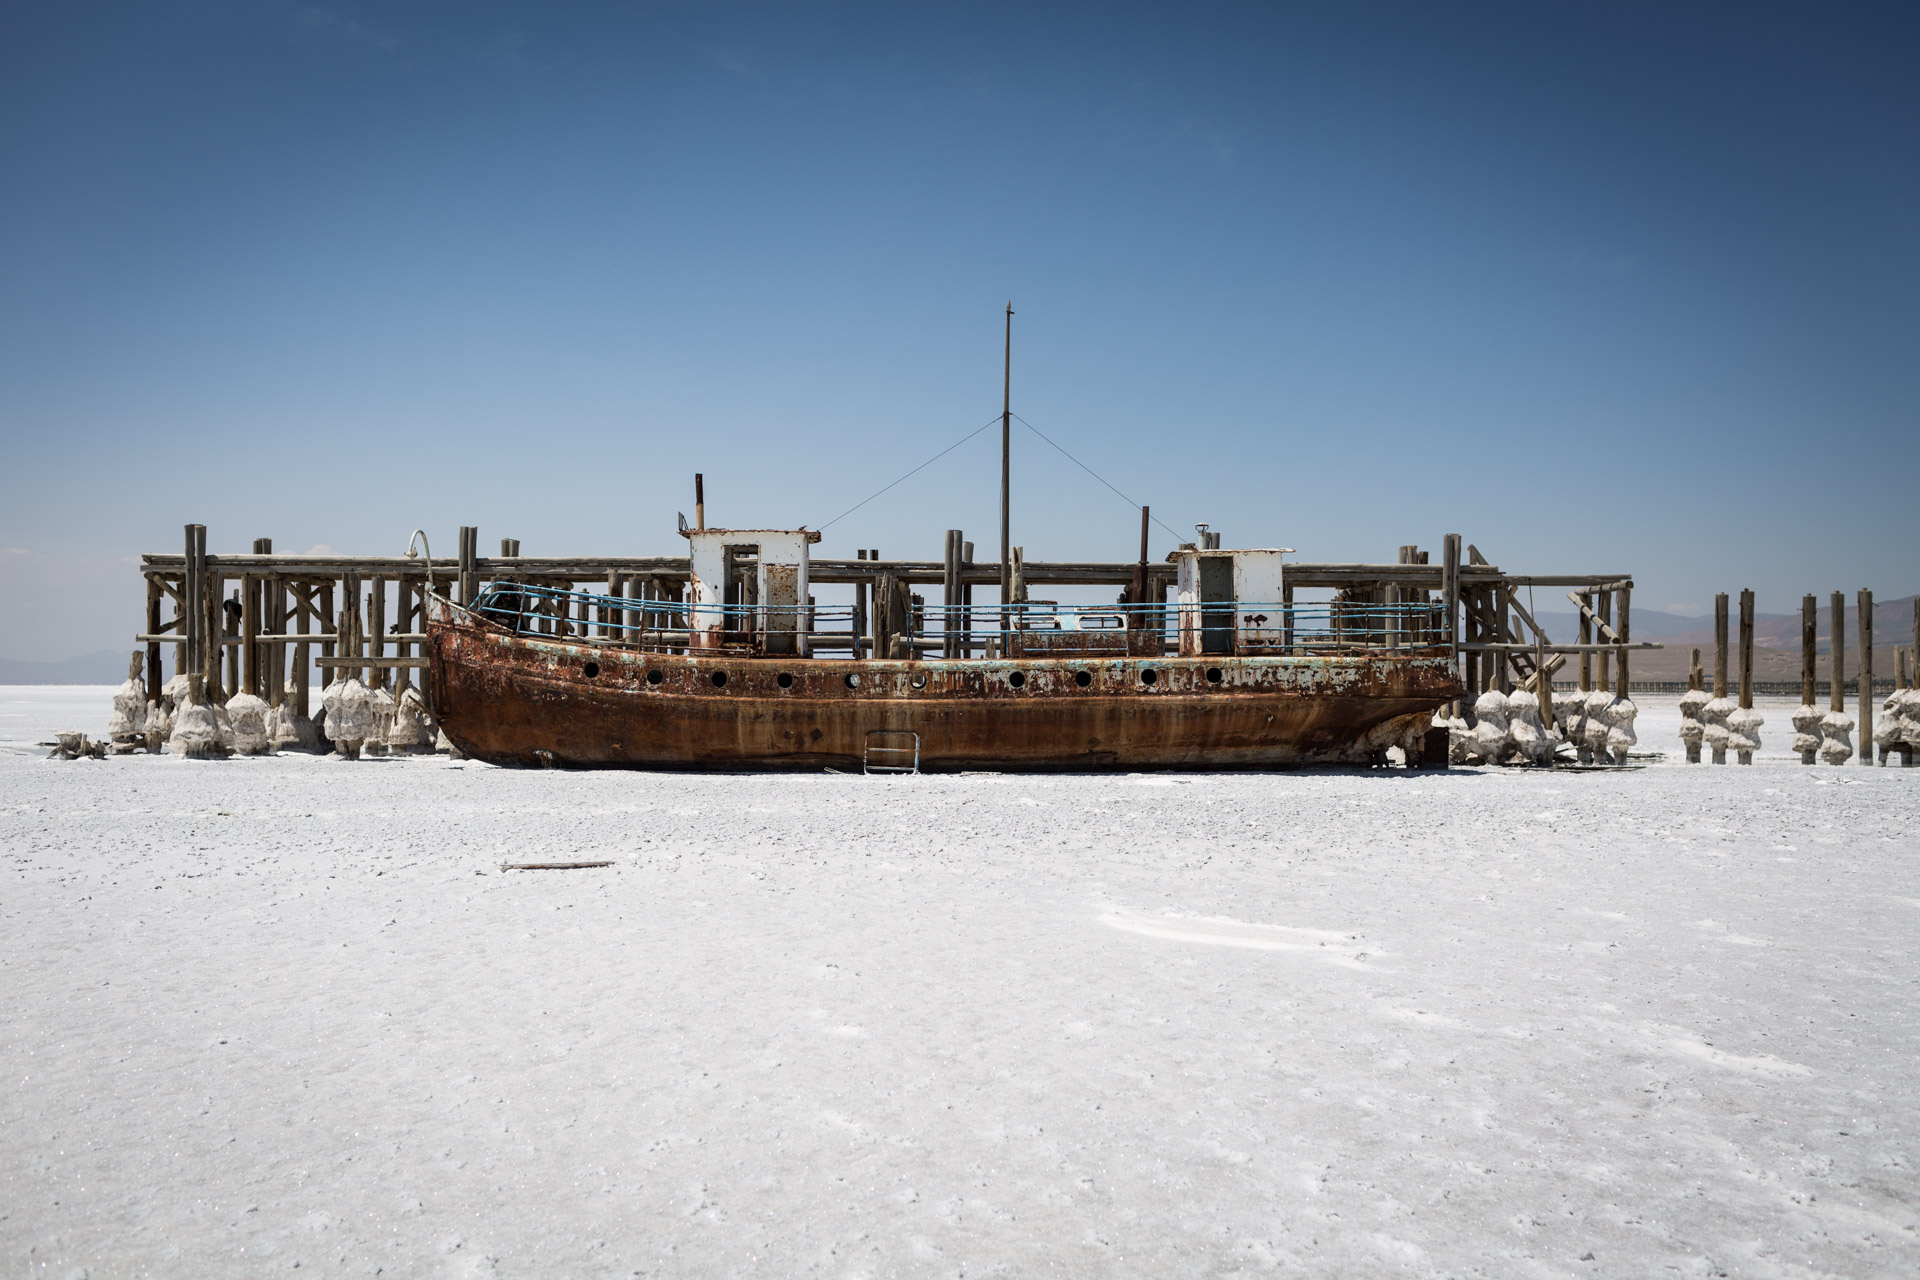 A ship sitting on salt rusts in the sun.